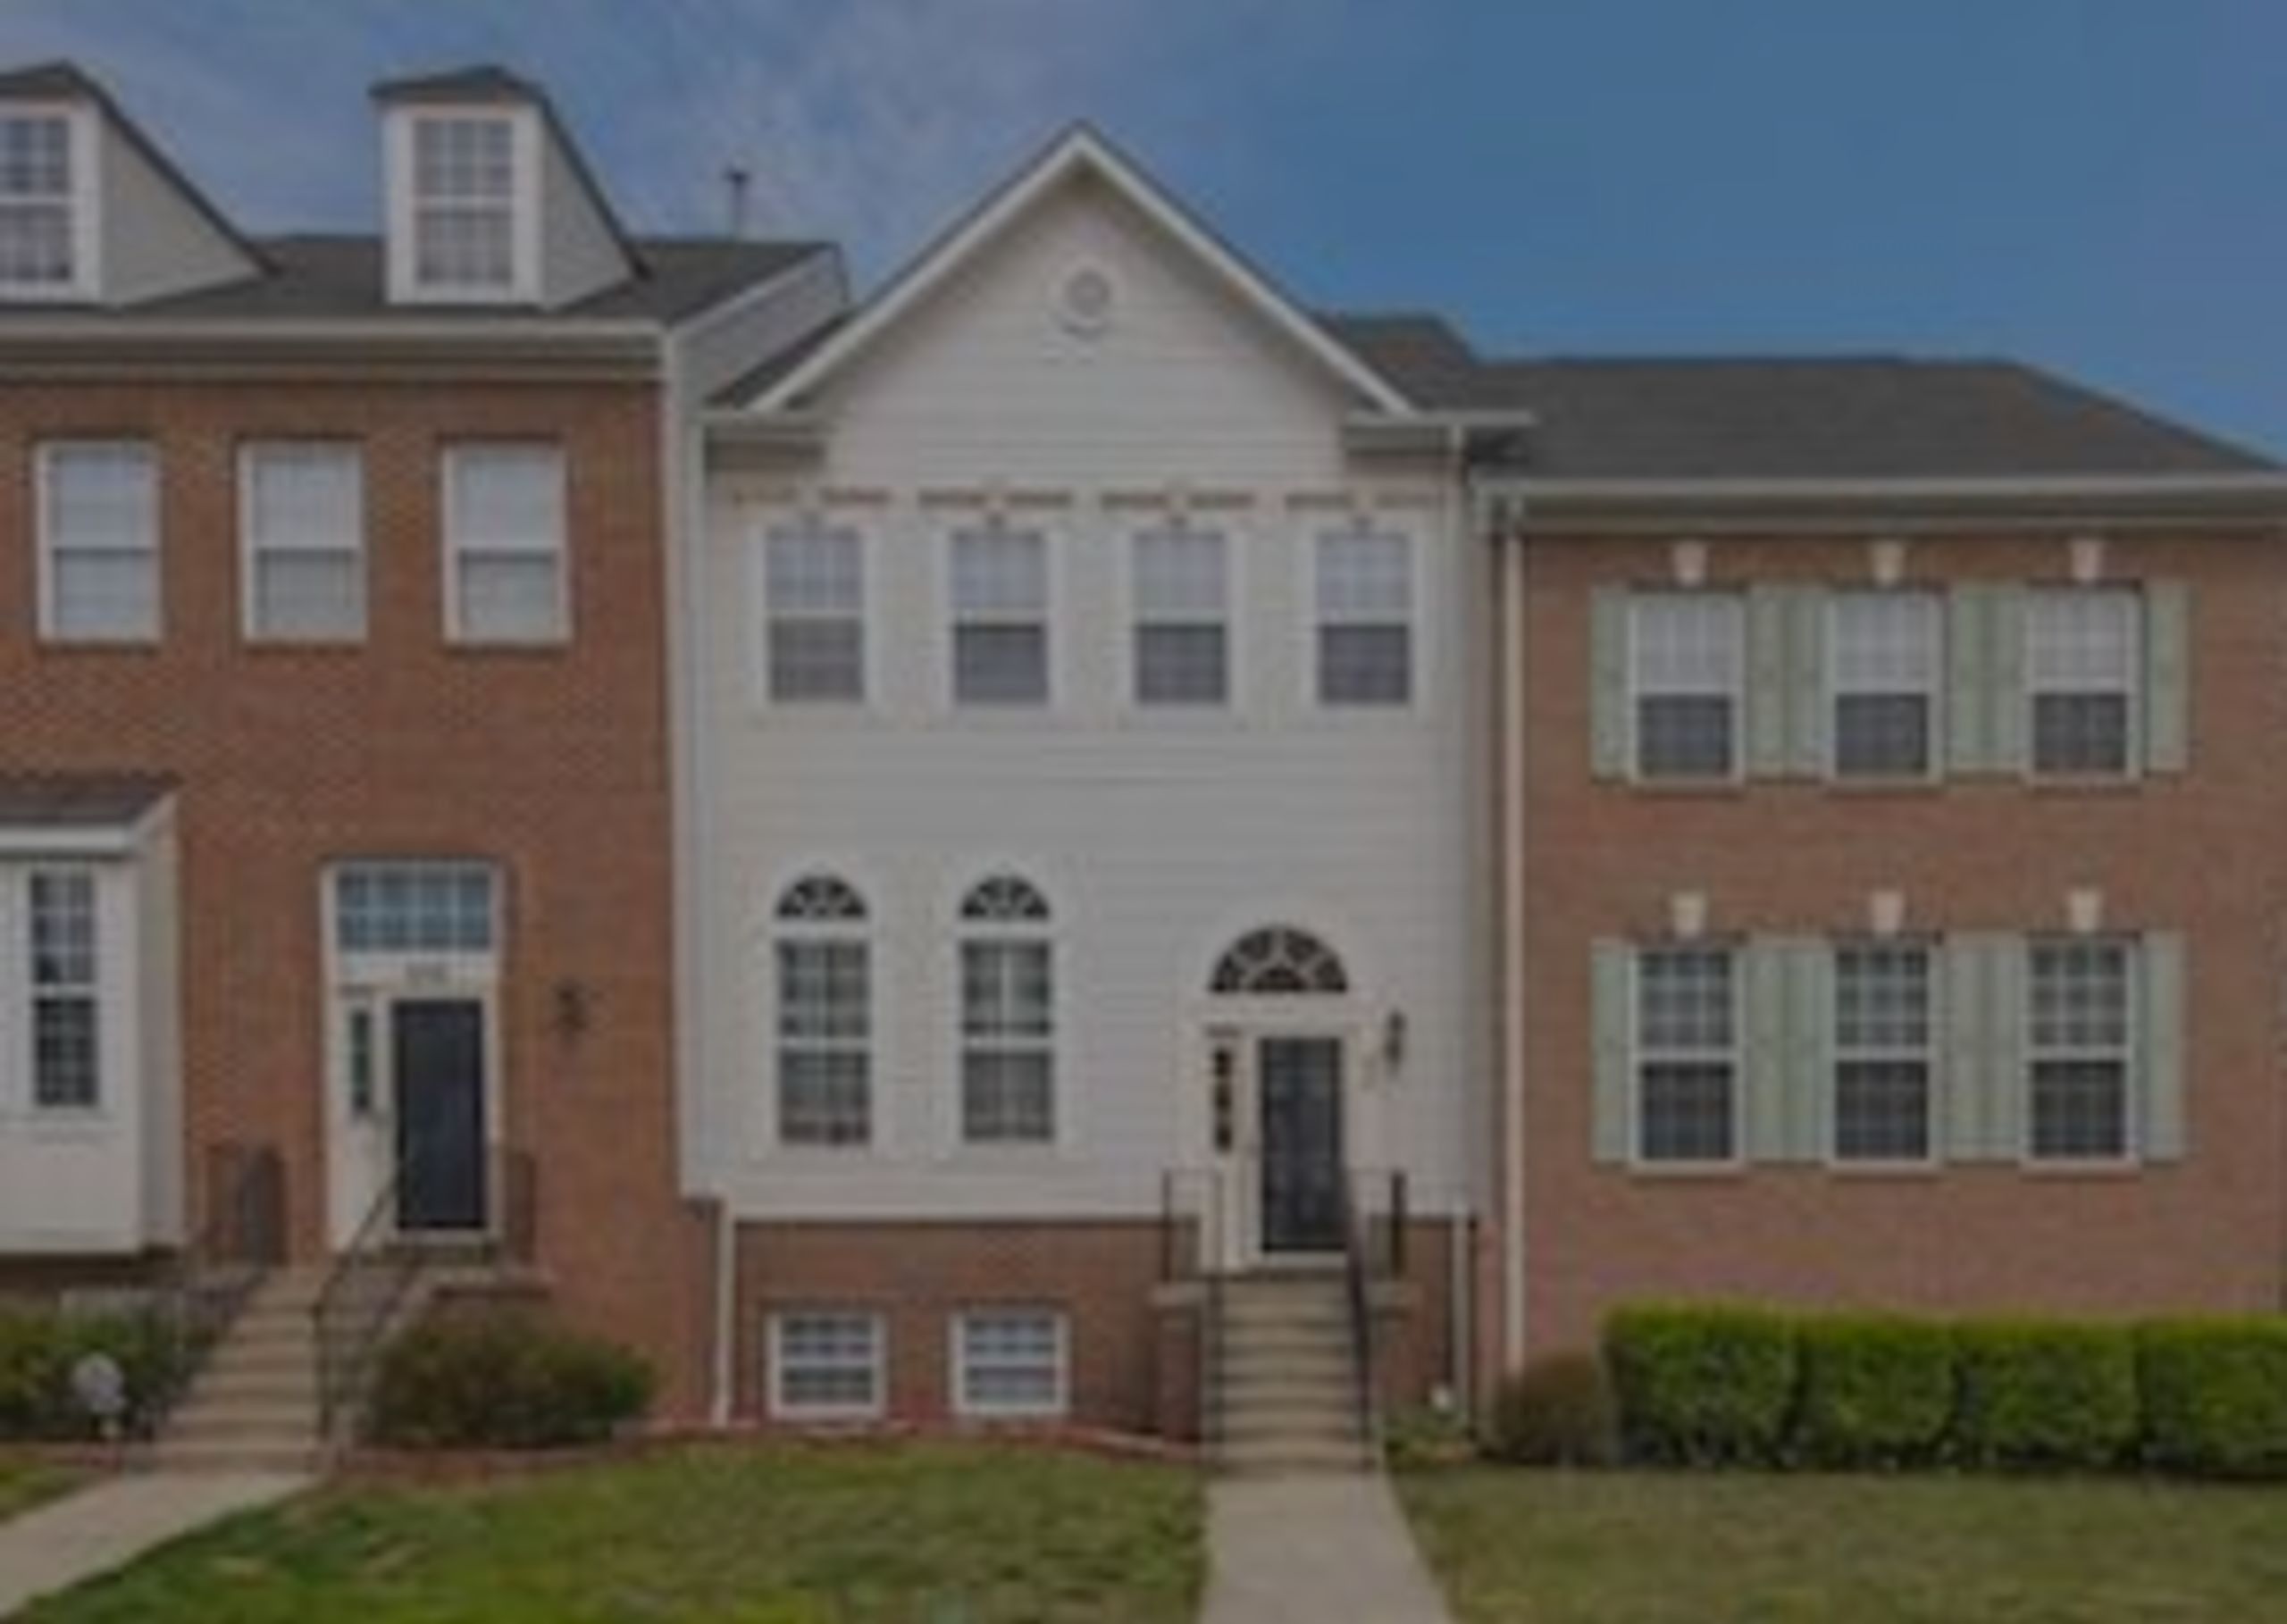 JUST LISTED: 8 Updated Properties in Loudoun, Fairfax & Frederick